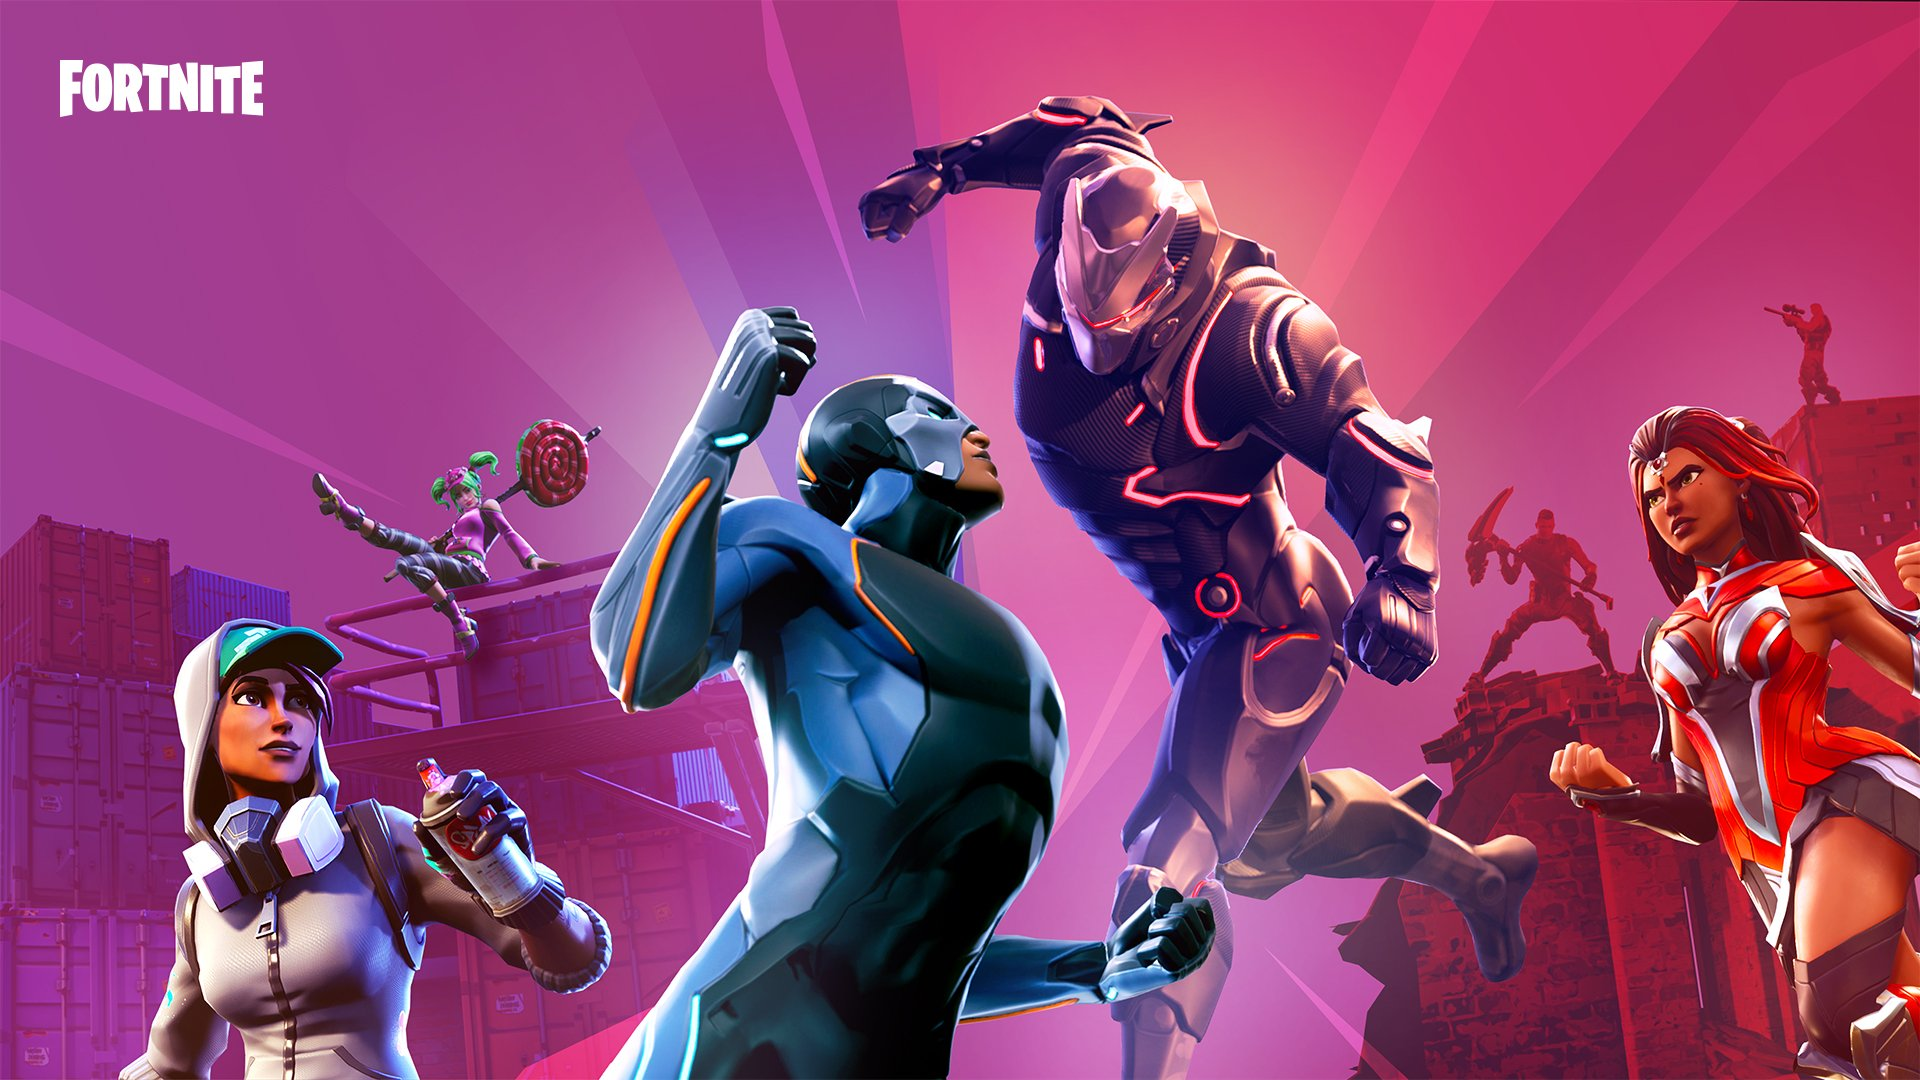 Fortnite reigns across livestreaming services as PUBG interest